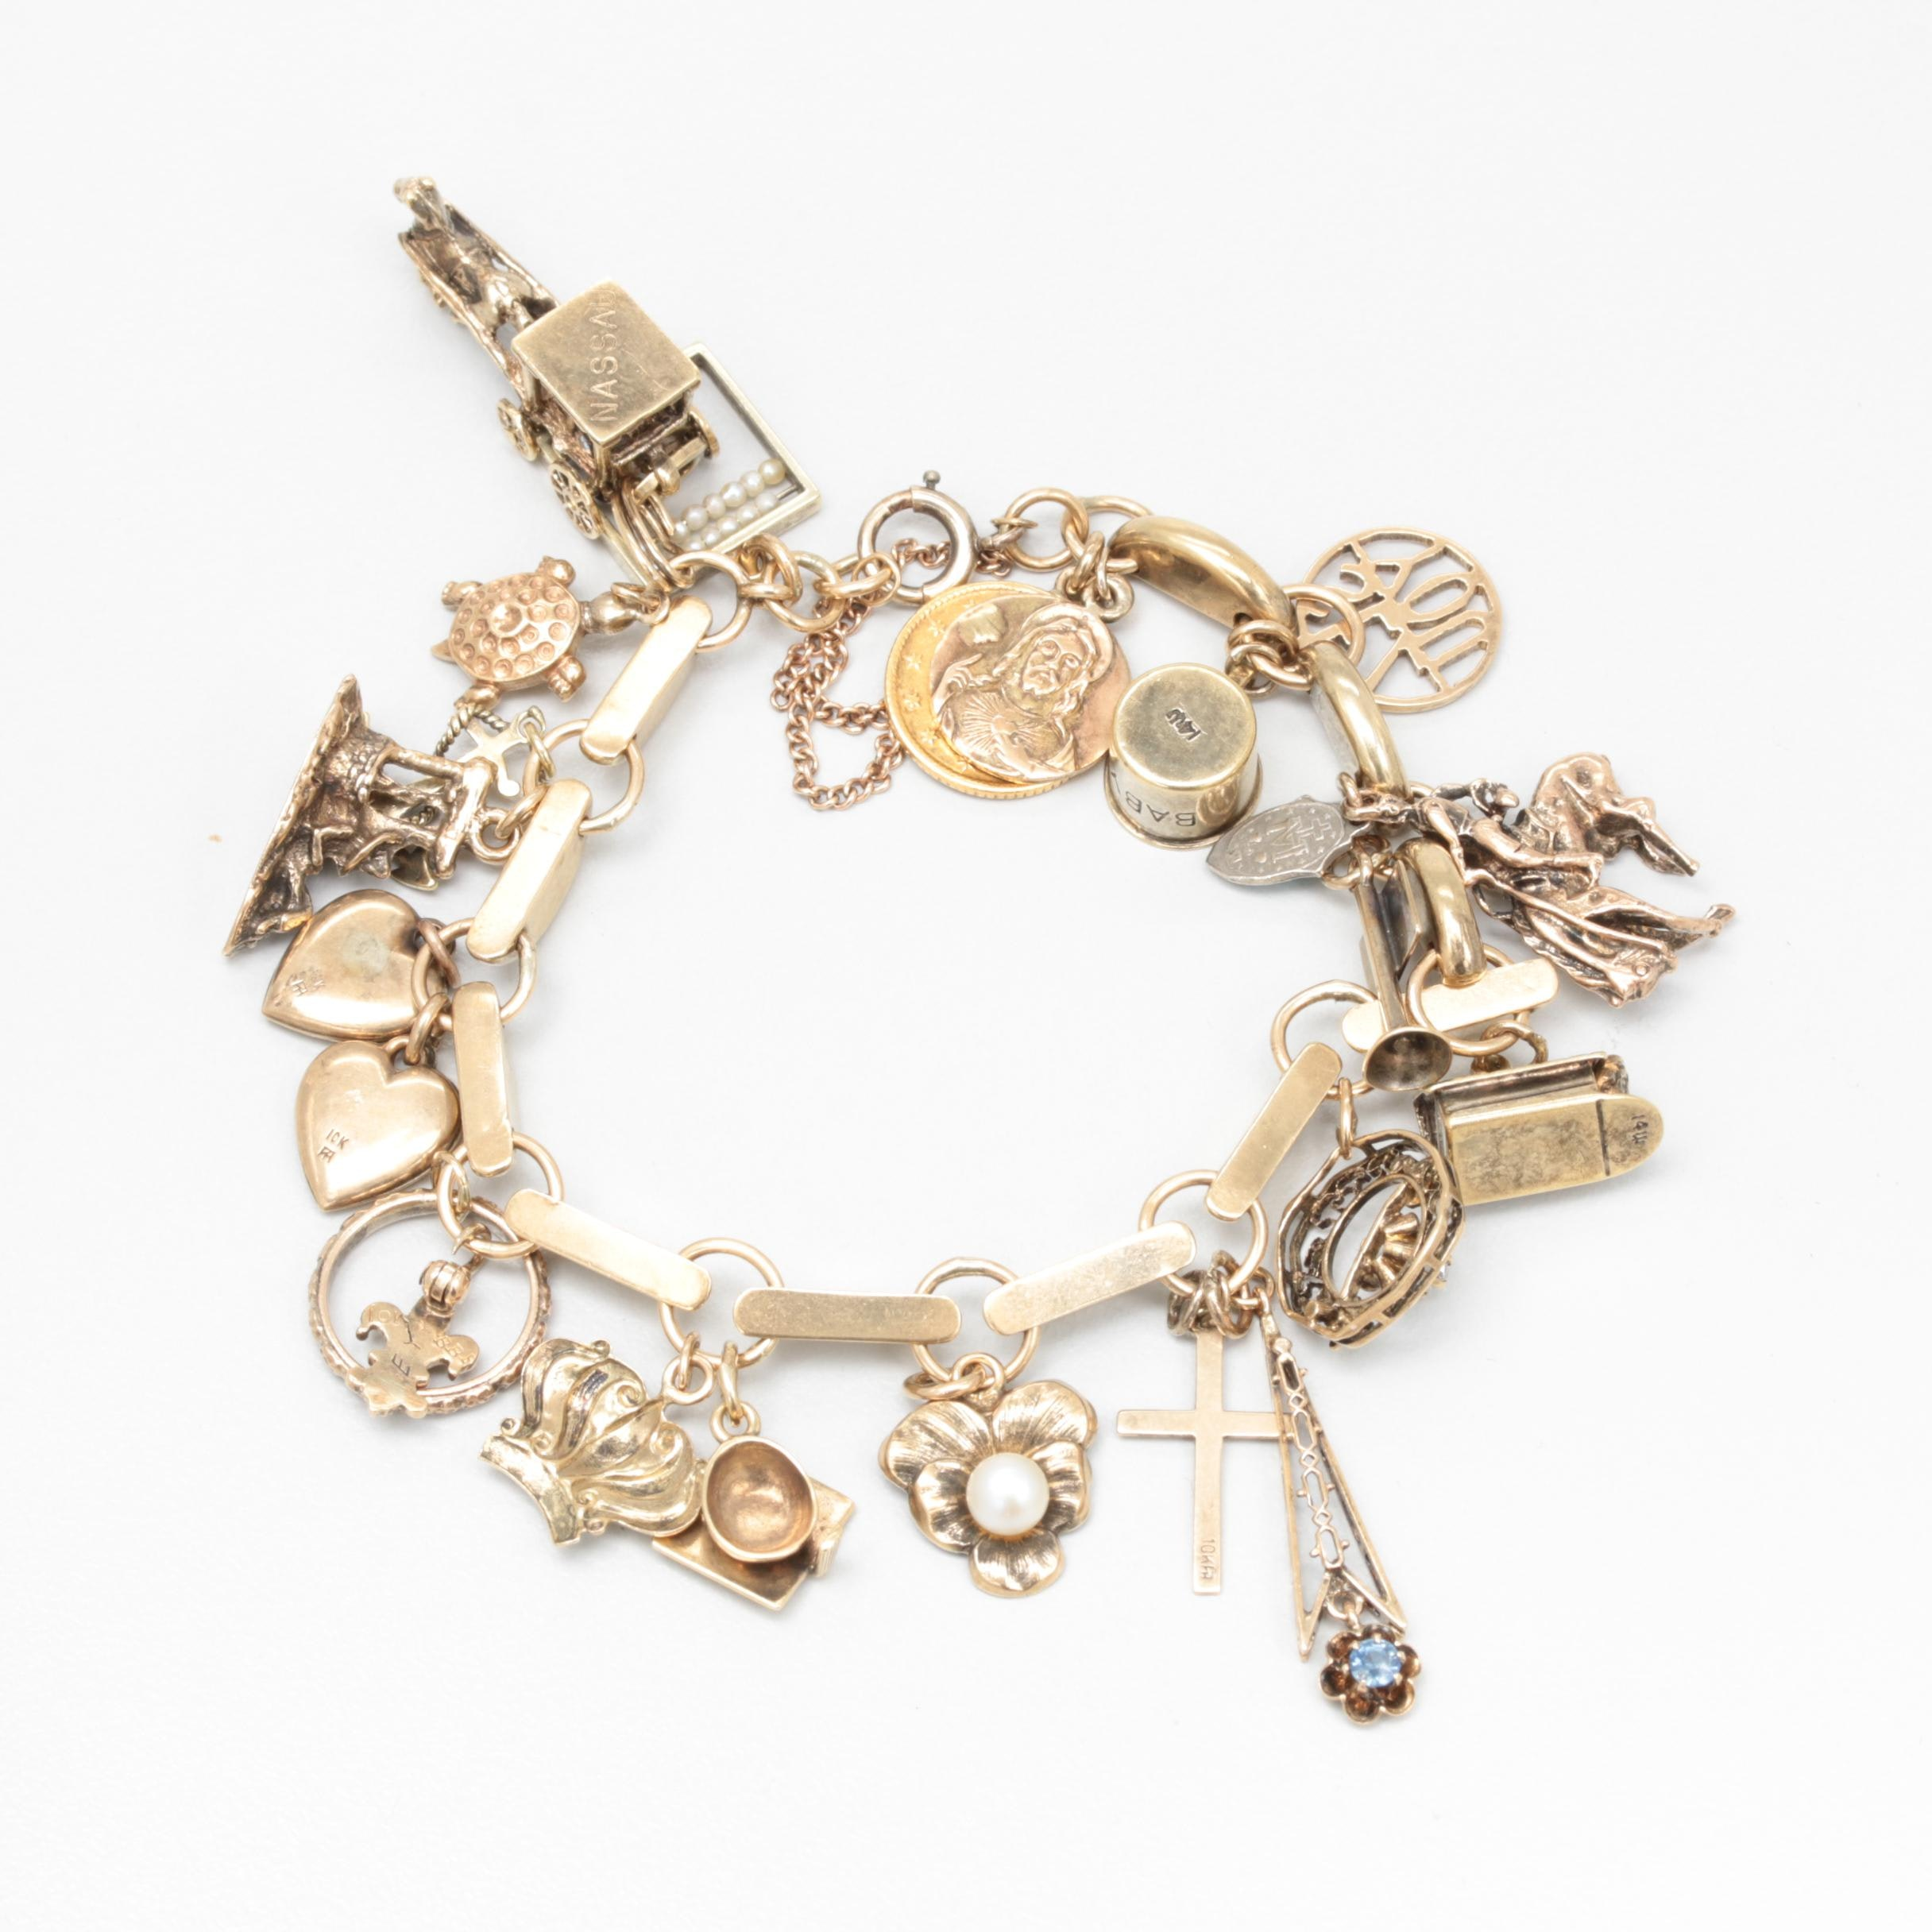 14K Yellow Gold Charm Bracelet with 10K, 14K and Sterling Charms and 1849 Coin